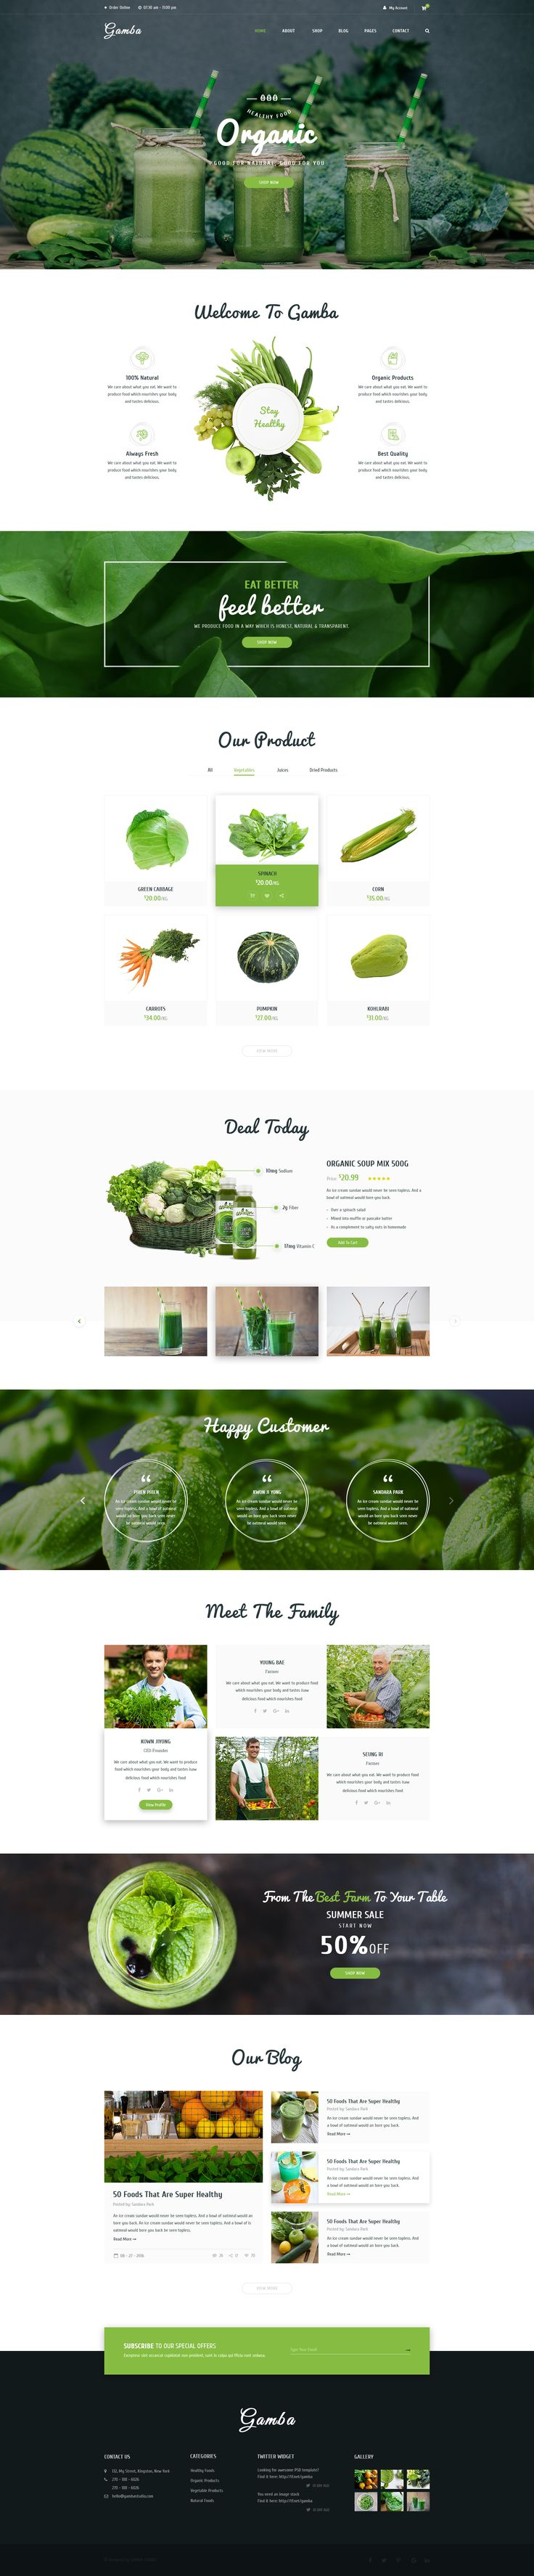 Gamba - Organic PSD Template • Download ➝ https://themeforest.net/item/gamba-organic-psd-template/16928343?ref=pxcr